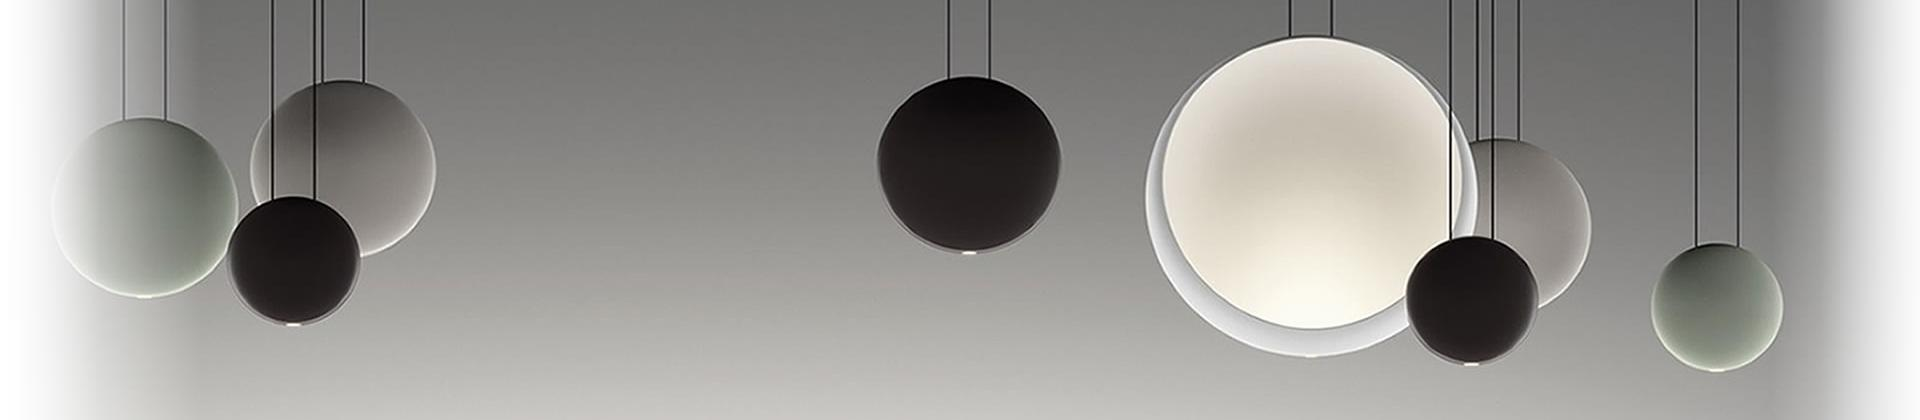 Lampes de table Vibia